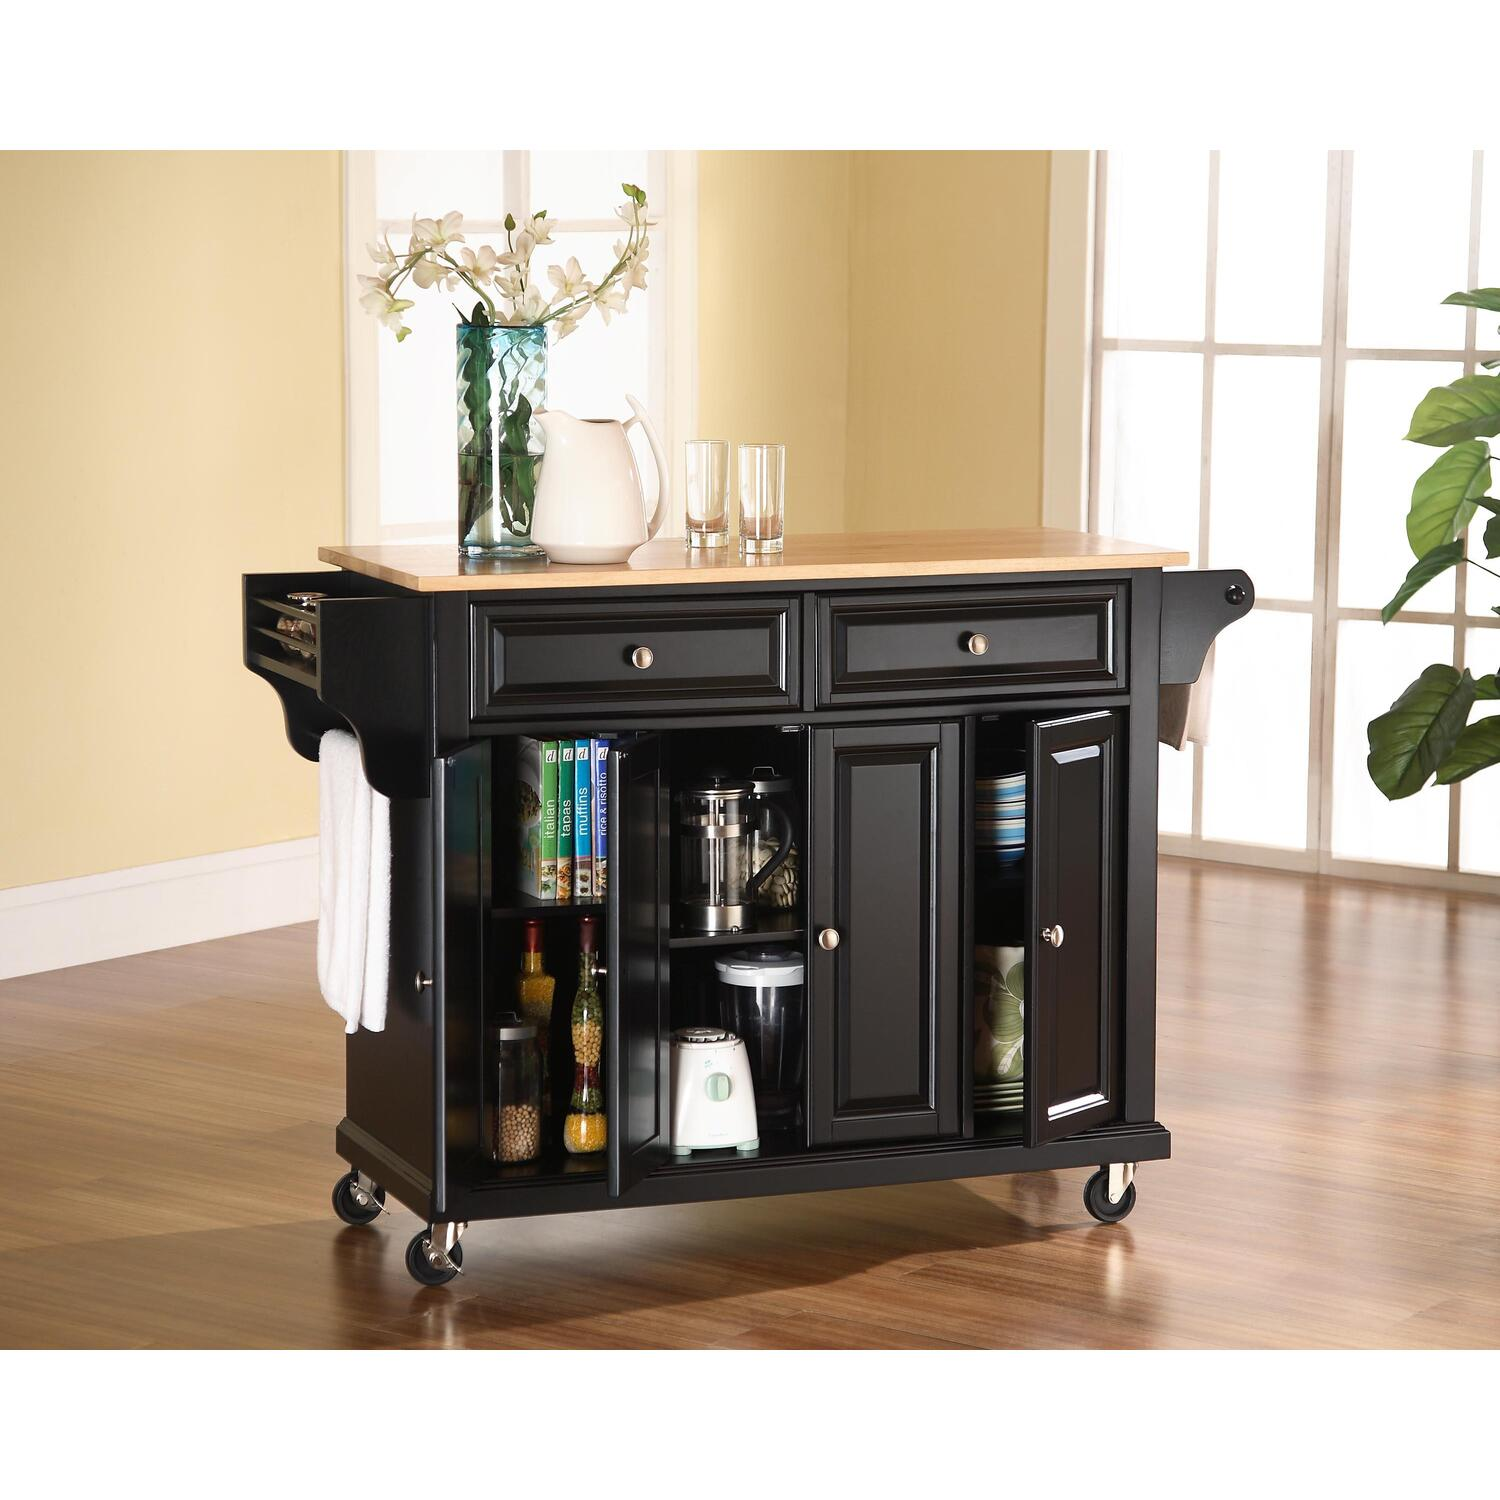 crosley kitchen cart island by oj commerce 369 00 460 00 finley home the espresso kitchen cart contemporary